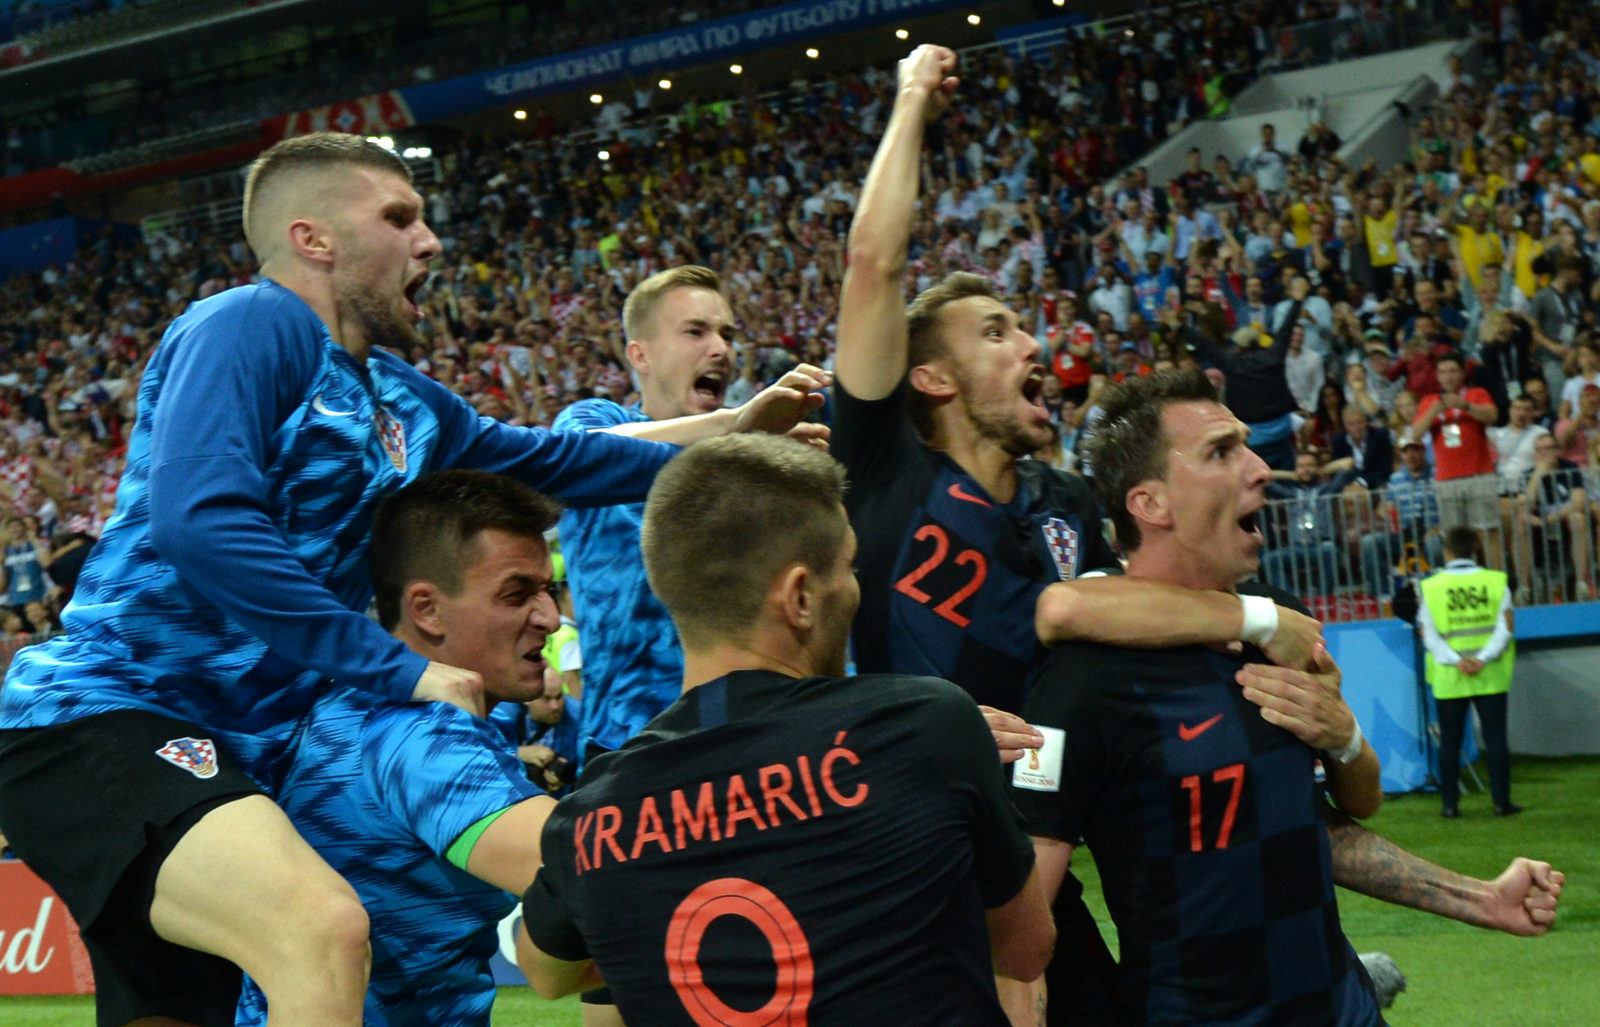 d6d9deea55c ... of Croatia celebrates with teammates after scoring the 2-1 lead during  the FIFA World Cup 2018 semi final soccer match between Croatia and England  in ...